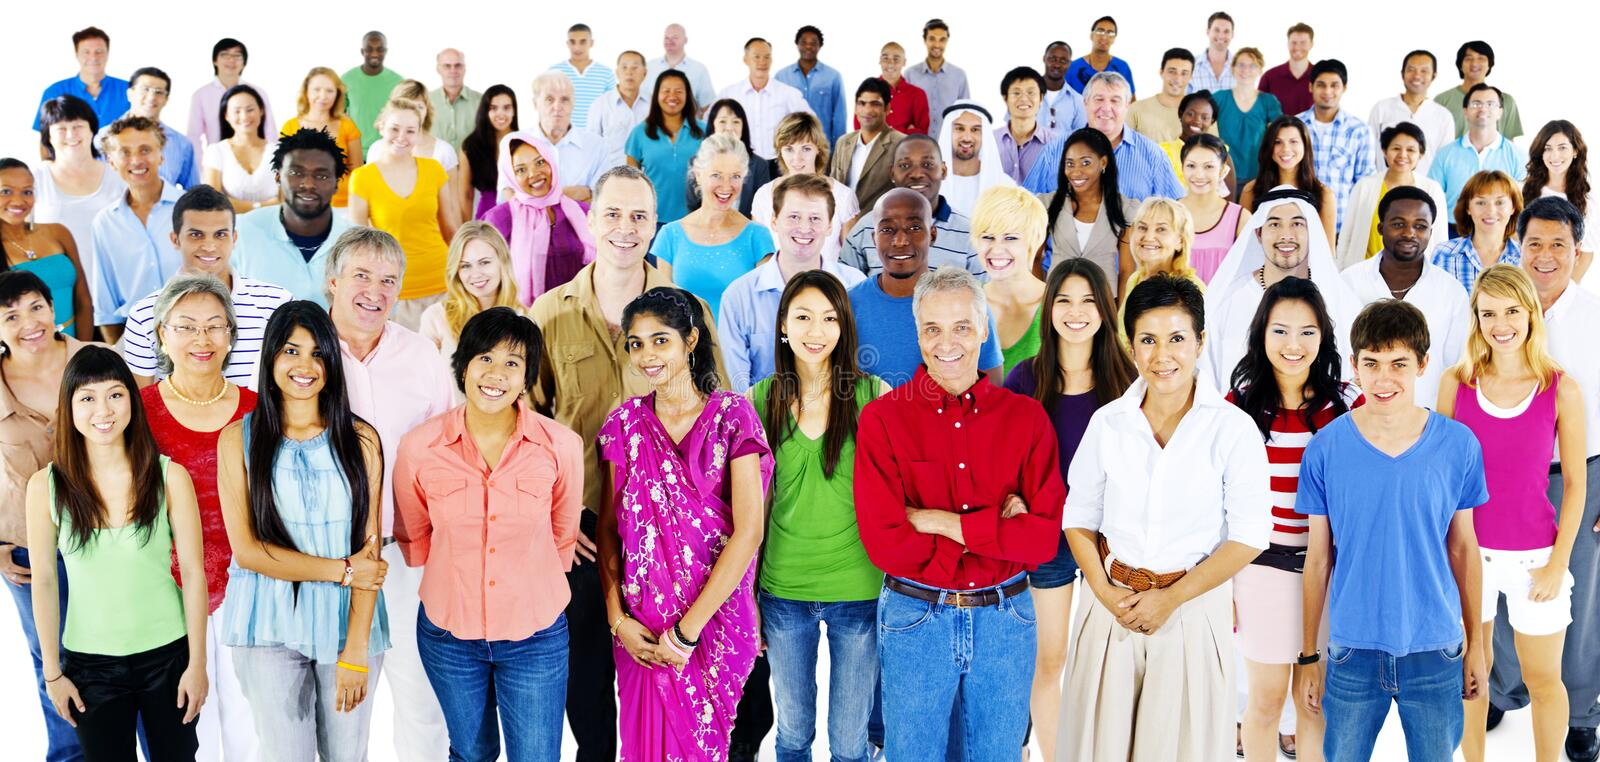 Diversity Large Group of People Multiethnic Concept stock images